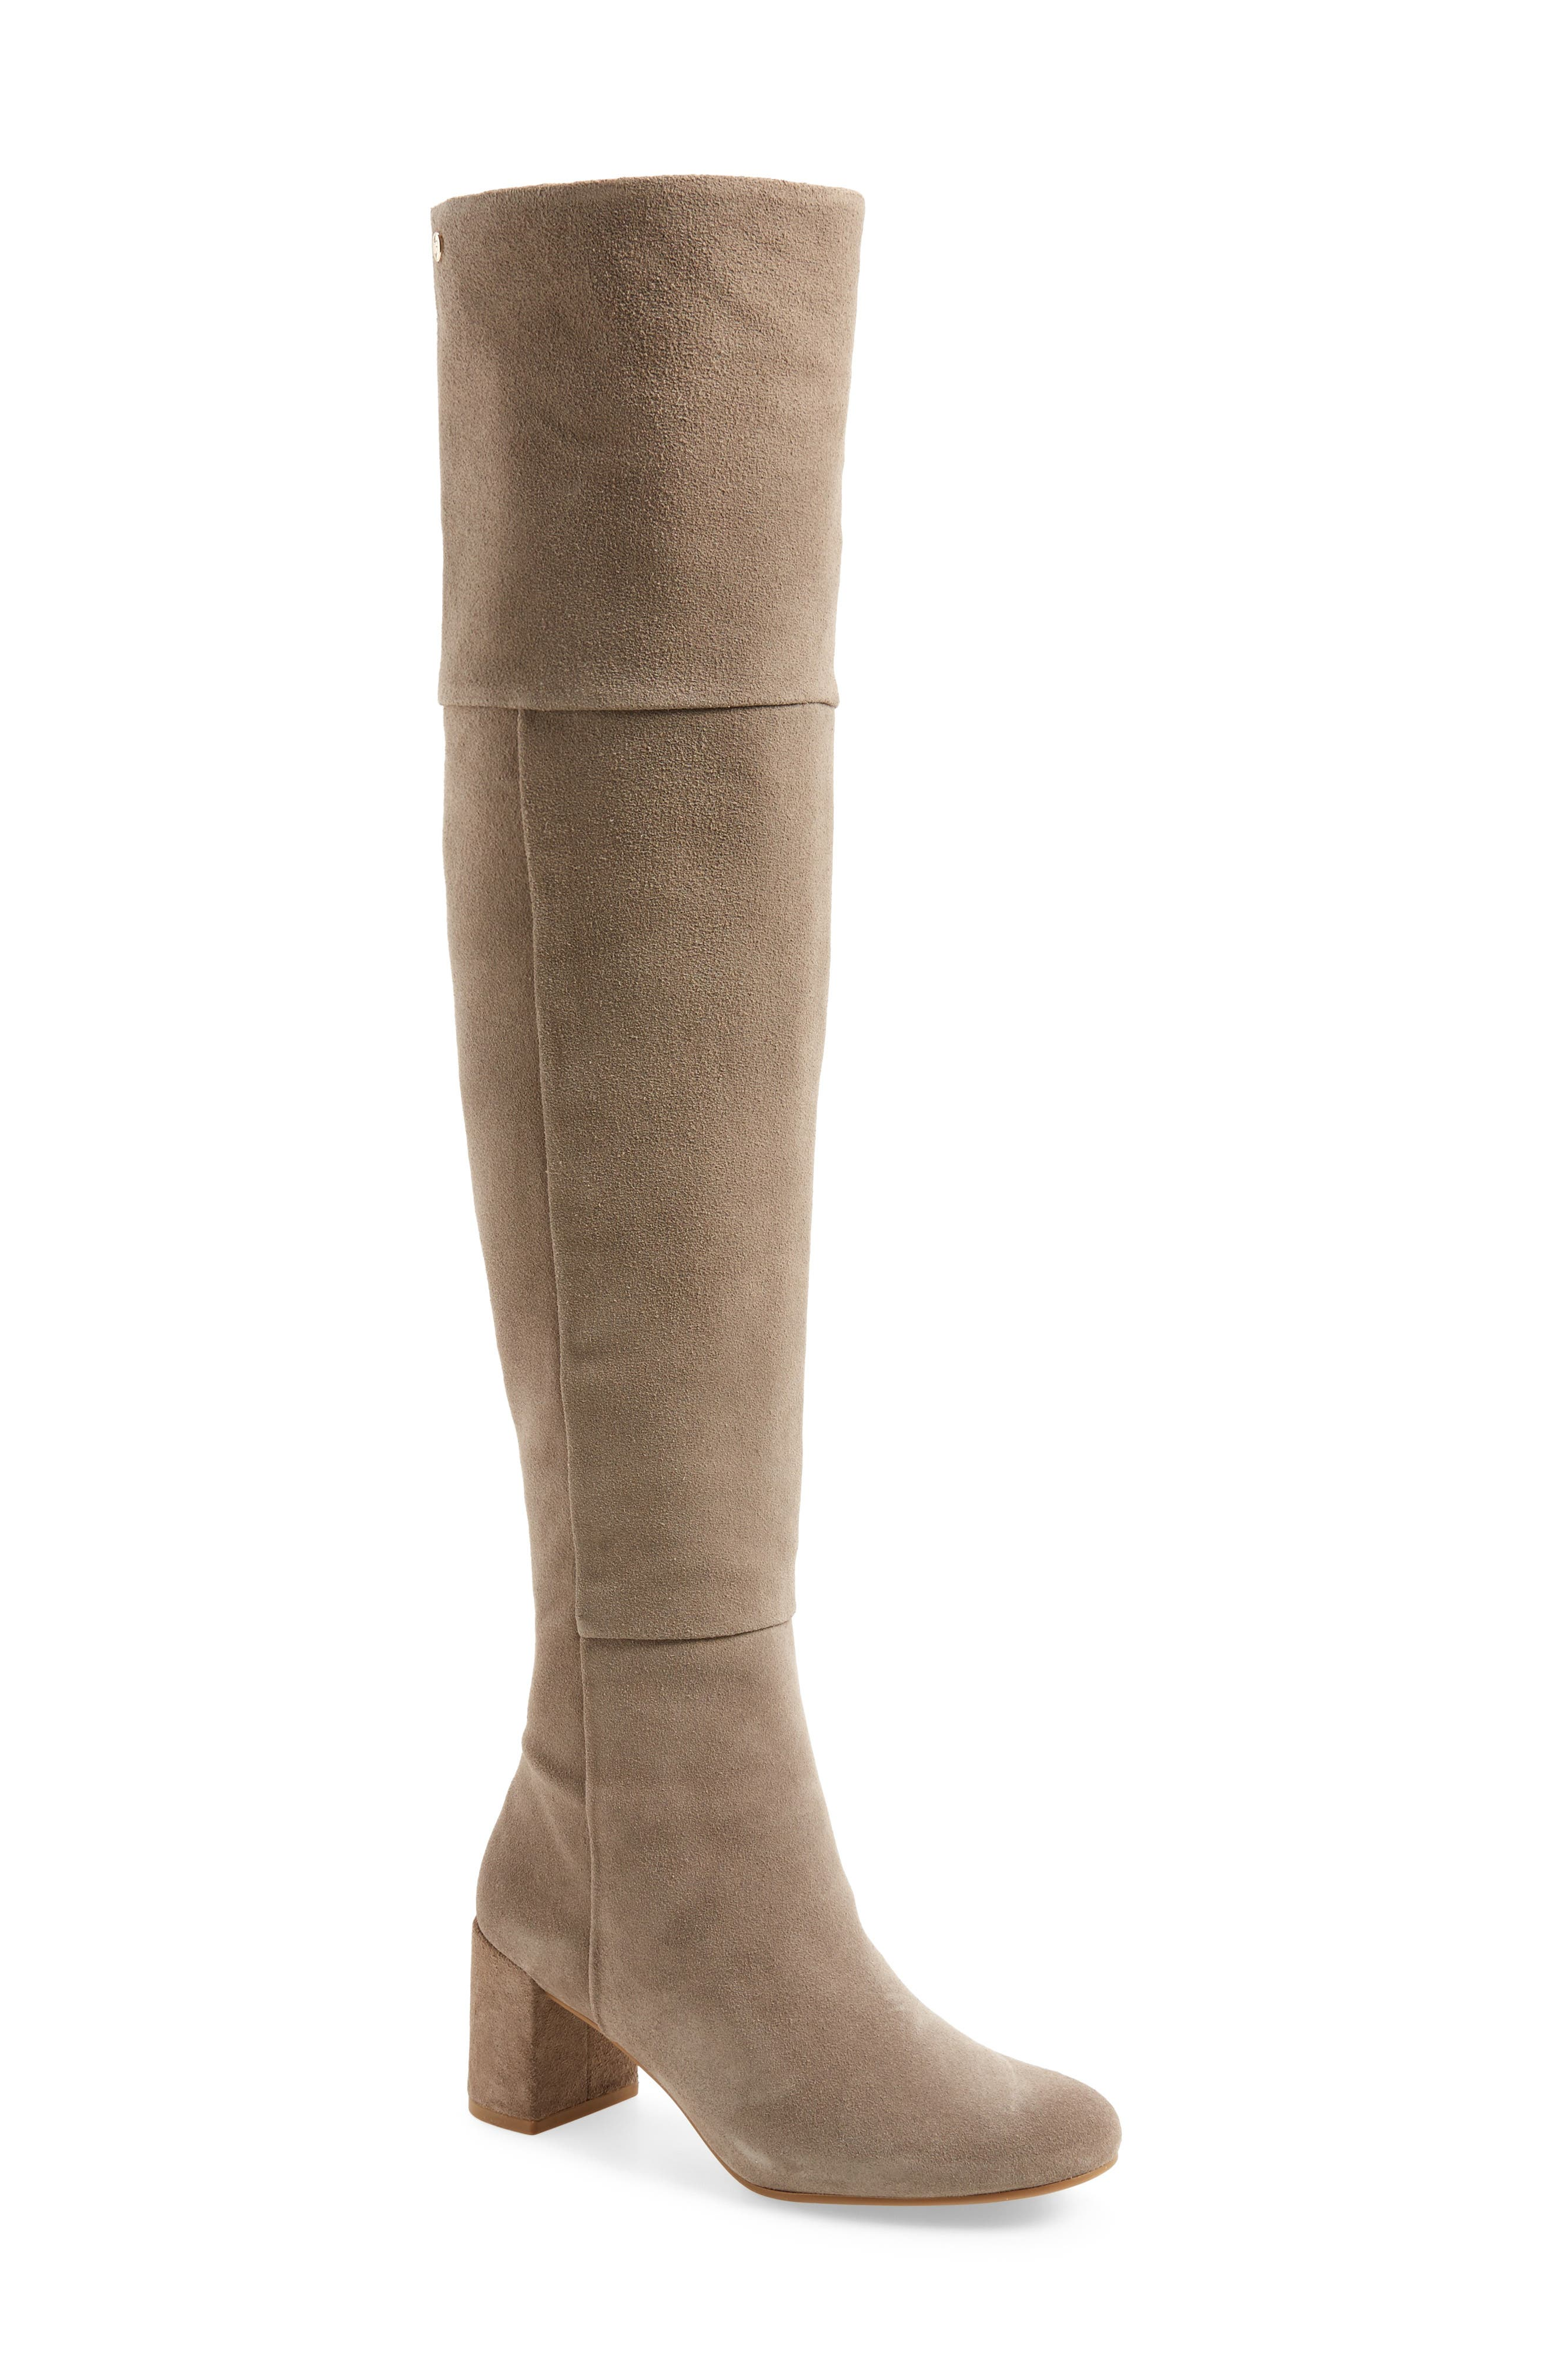 Catherine Over the Knee Boot,                             Main thumbnail 1, color,                             Grey Suede